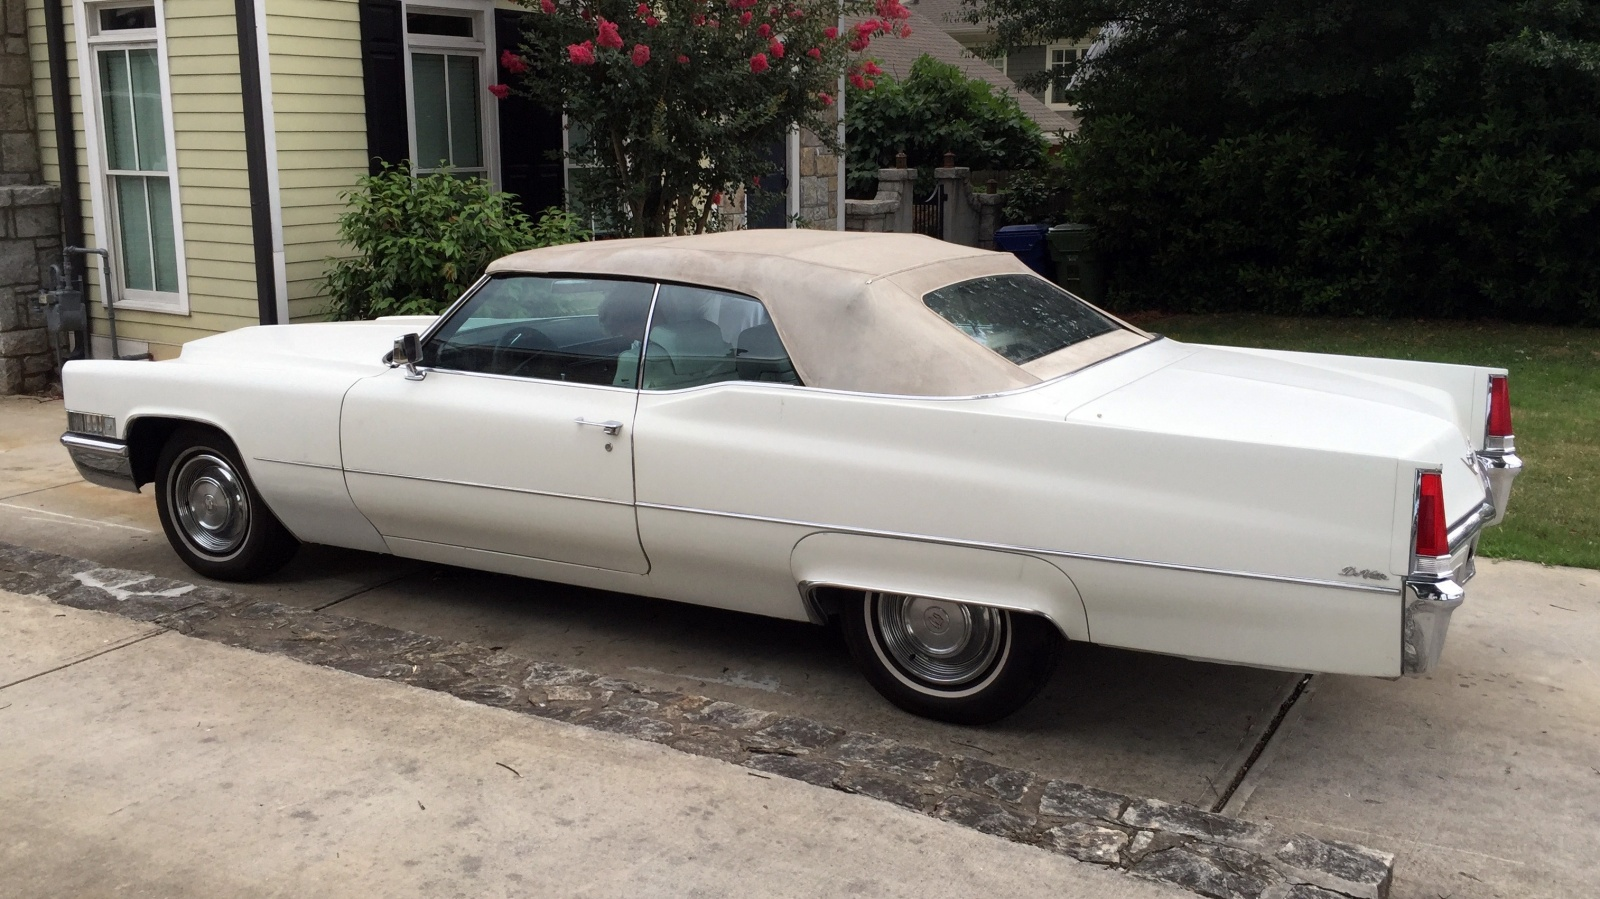 EXCLUSIVE: 1969 Cadillac DeVille Convertible